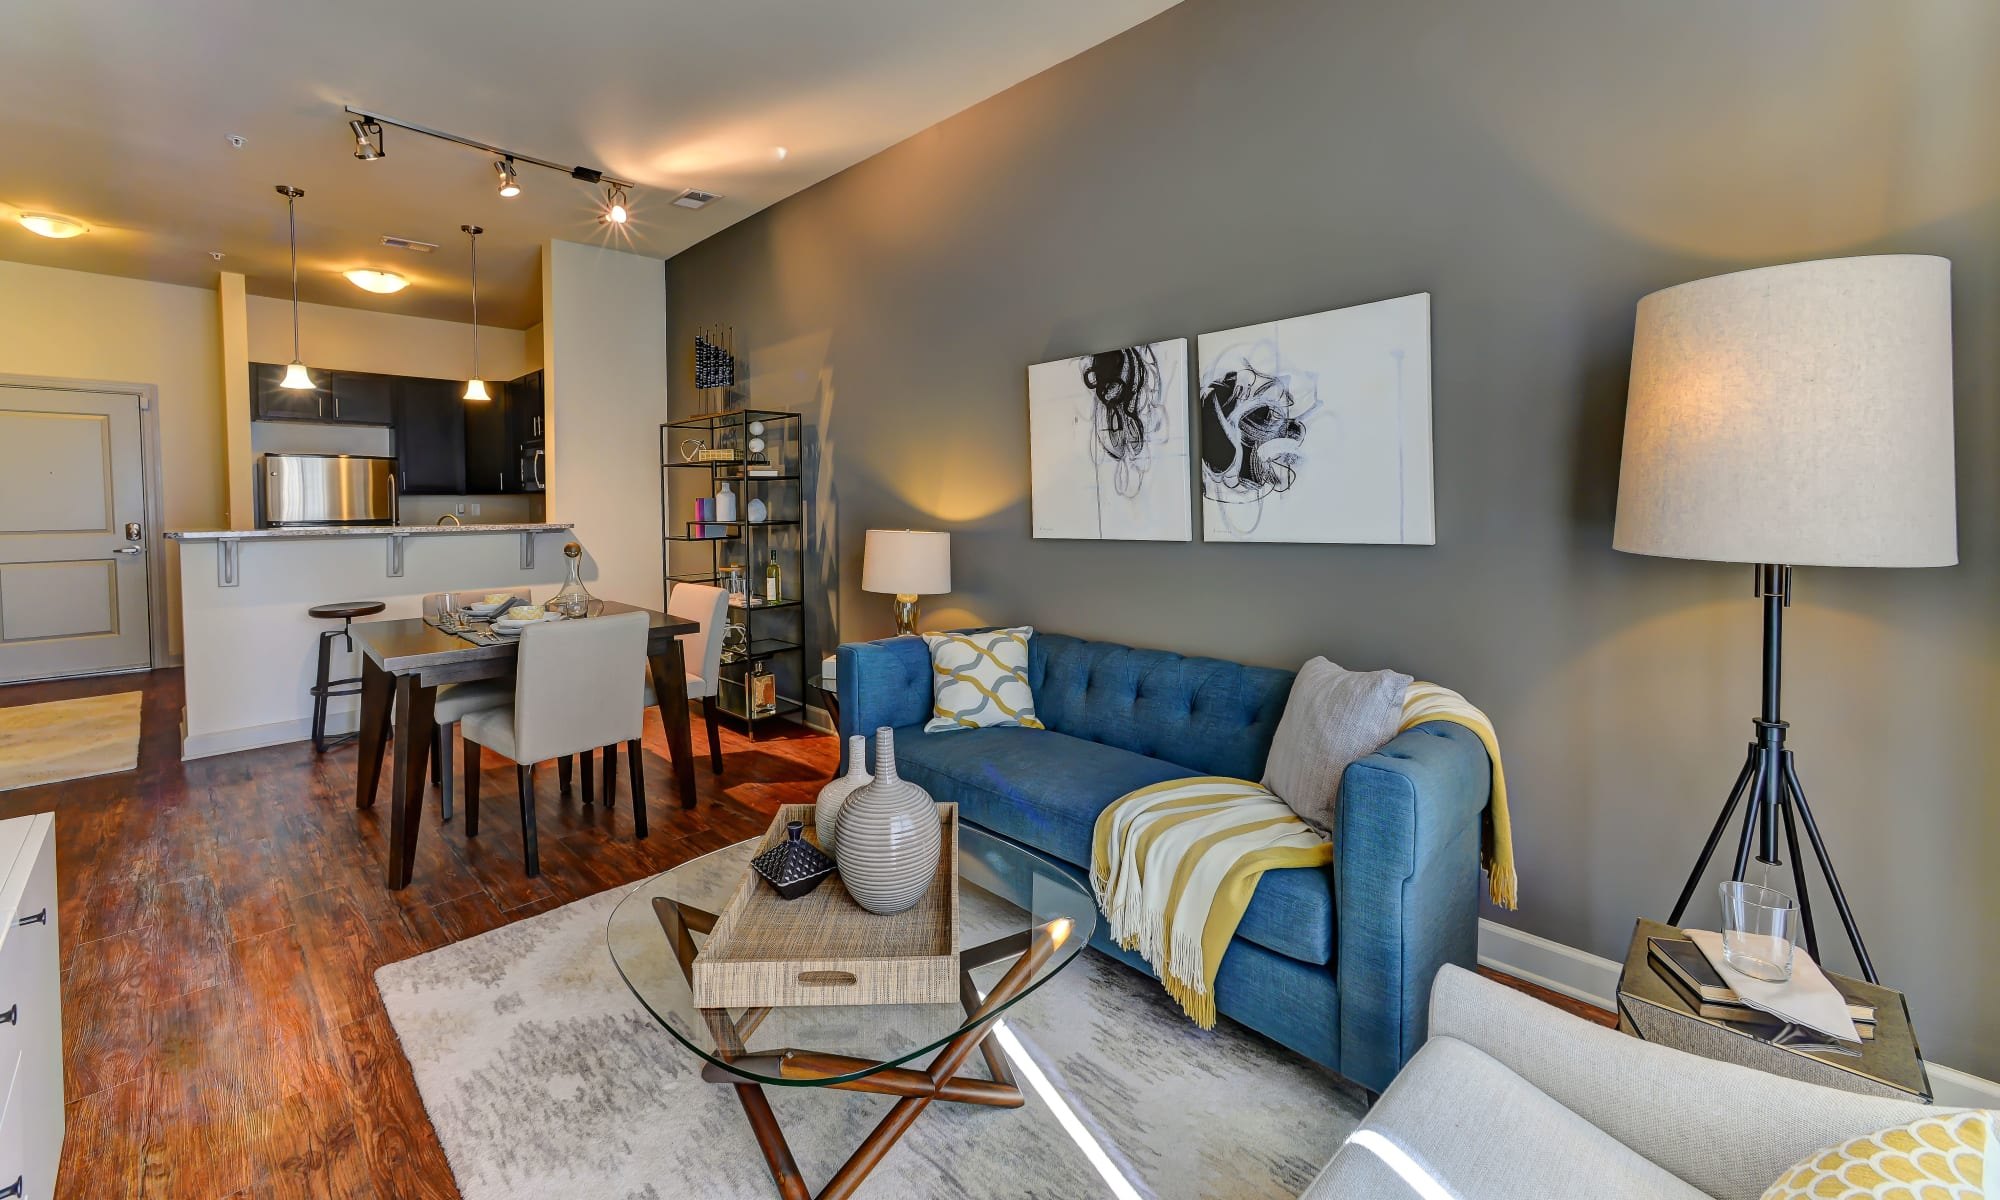 Apartments for Rent Raleigh, NC,  apartments for rent raleigh nc,  apartments for rent raleigh nc under 1000,  apartments for rent raleigh nc zillow,  apartments for rent raleigh nc cheap,  apartments for rent raleigh nc 27616,  apartments for rent raleigh nc 27603,  apartments for rent raleigh nc 27615,  apartments for rent raleigh nc 27612,  apartments for rent raleigh nc 27613,  apartments for rent raleigh nc under 900,  apartments for rent around raleigh nc,  apartments for rent glenwood ave raleigh nc,  apartments for rent in raleigh nc with no application fee,  apartments for rent wade ave raleigh nc,  apartments for rent that accept evictions raleigh nc,  affordable apartments for rent in raleigh nc,  apartments for rent near glenwood ave raleigh nc,  apartments for rent on avent ferry raleigh nc,  apartments for rent near pnc arena raleigh nc,  apartments for rent at cameron village raleigh nc,  apartments for rent raleigh nc 2 bedroom,  apartments for rent in raleigh nc based on income,  apartments for rent in raleigh nc bad credit,  basement apartment for rent raleigh nc,  3 bedroom apartments for rent raleigh nc,  apartments for rent by owner raleigh nc,  1 bedroom apartments for rent raleigh nc,  apartments for rent brier creek raleigh nc,  one bedroom apartments for rent raleigh nc,  4 bedroom apartments for rent raleigh nc,  apartments for rent raleigh nc craigslist,  apartments for rent raleigh nc no credit check,  apartments for rent in raleigh cary nc,  apartments for rent in raleigh nc near crabtree valley mall,  apartments for rent cameron village raleigh nc,  apartments for rent centennial campus raleigh nc,  craigslist housing for rent raleigh nc,  apartments for rent raleigh durham nc,  apartments for rent downtown raleigh nc,  duplex apartments for rent raleigh nc,  apartments for rent downtown raleigh north carolina,  apartments for rent near downtown raleigh nc,  apartments for rent near raleigh durham nc,  apartments for rent on duraleigh r